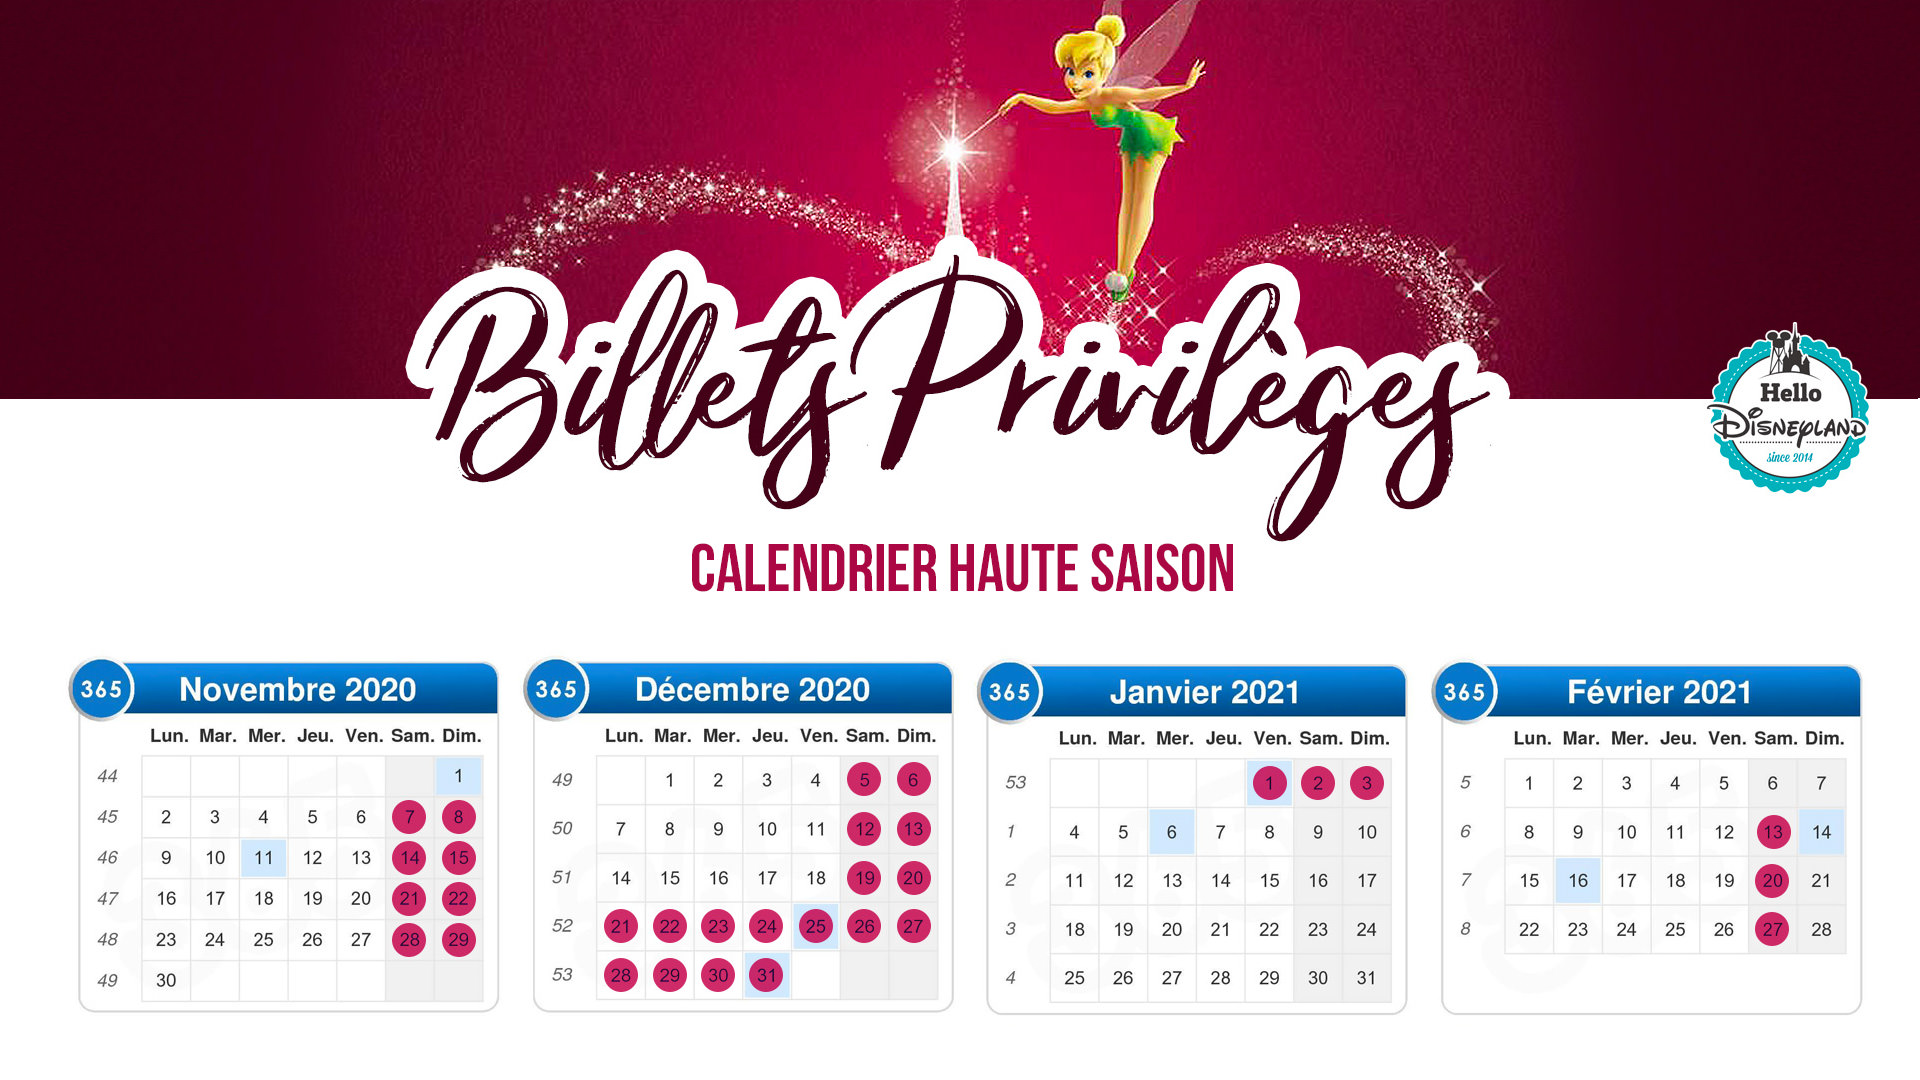 calendrier saison billets privileges 2020 disneyland paris